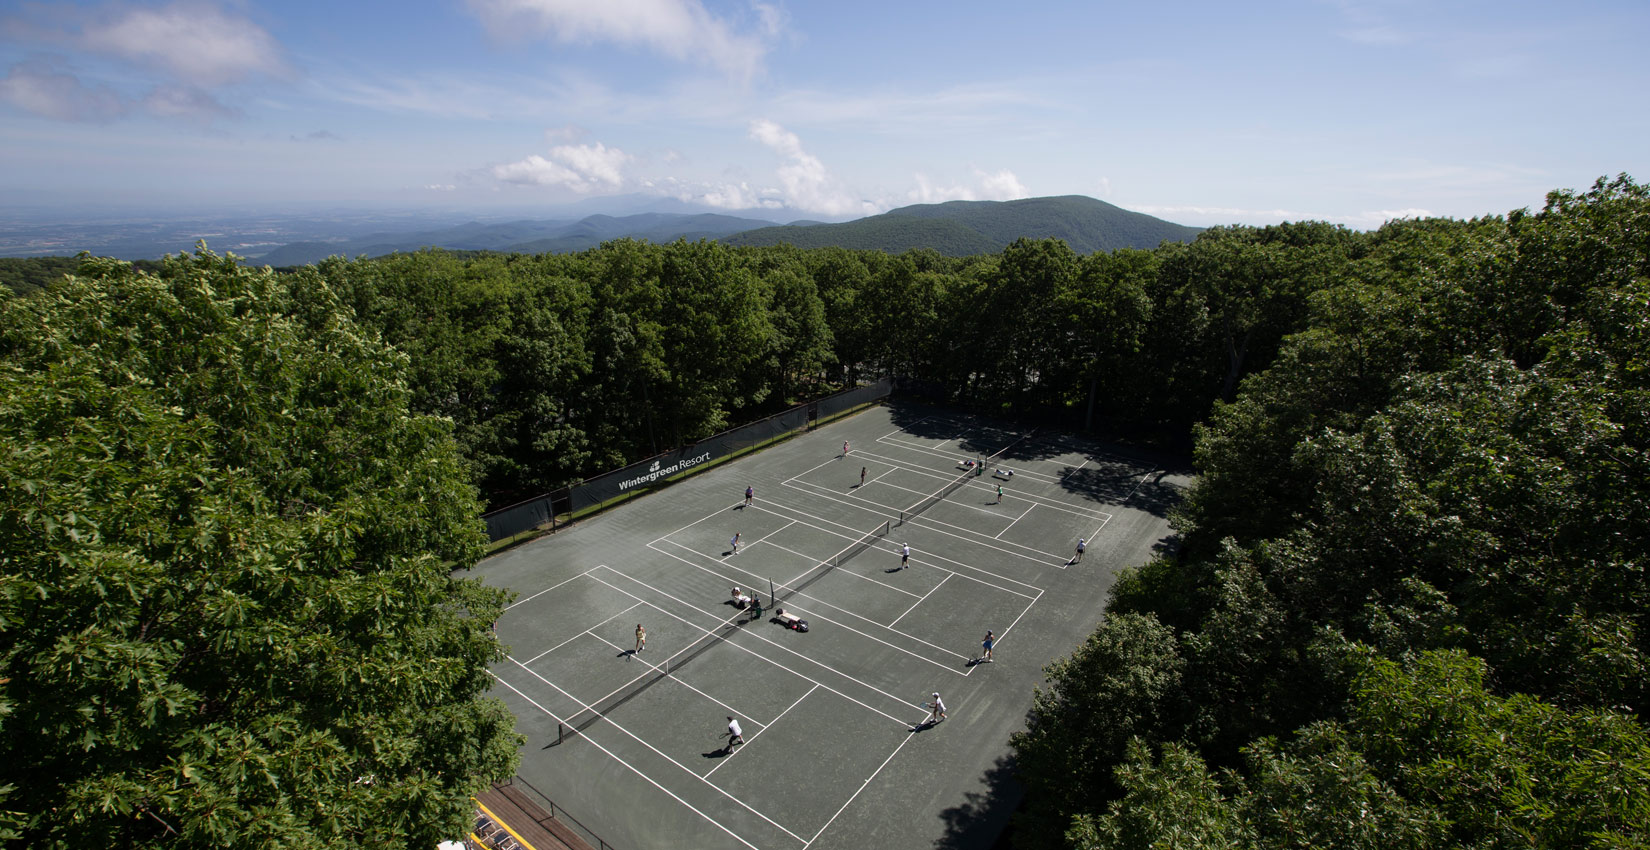 Tennis Vacation at Wintergreen Resort